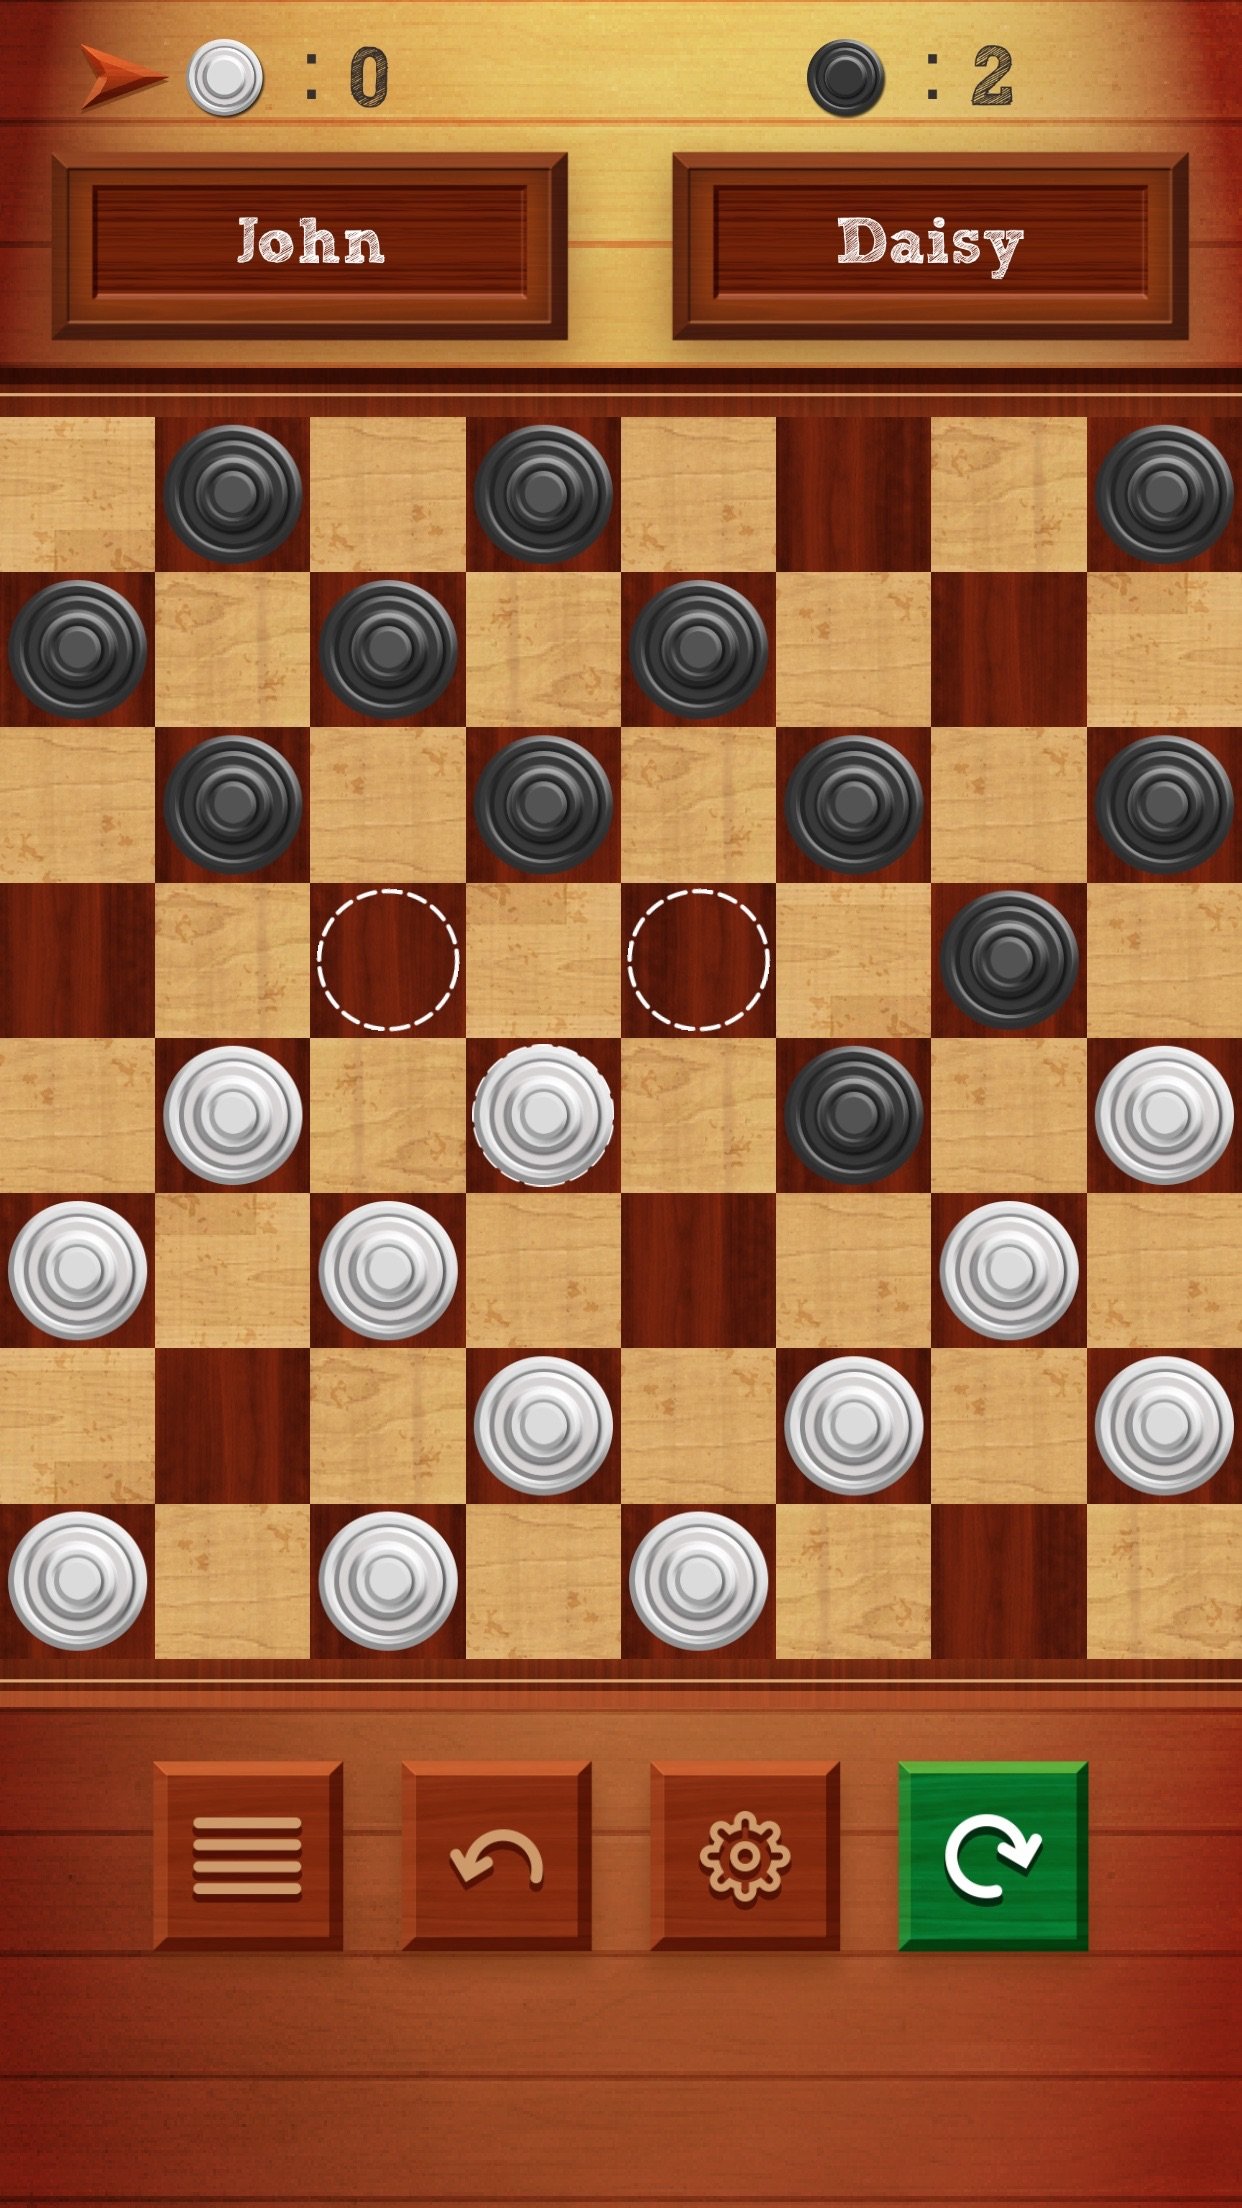 Checkers Classic Online - Multiplayer 2 Players Screenshot